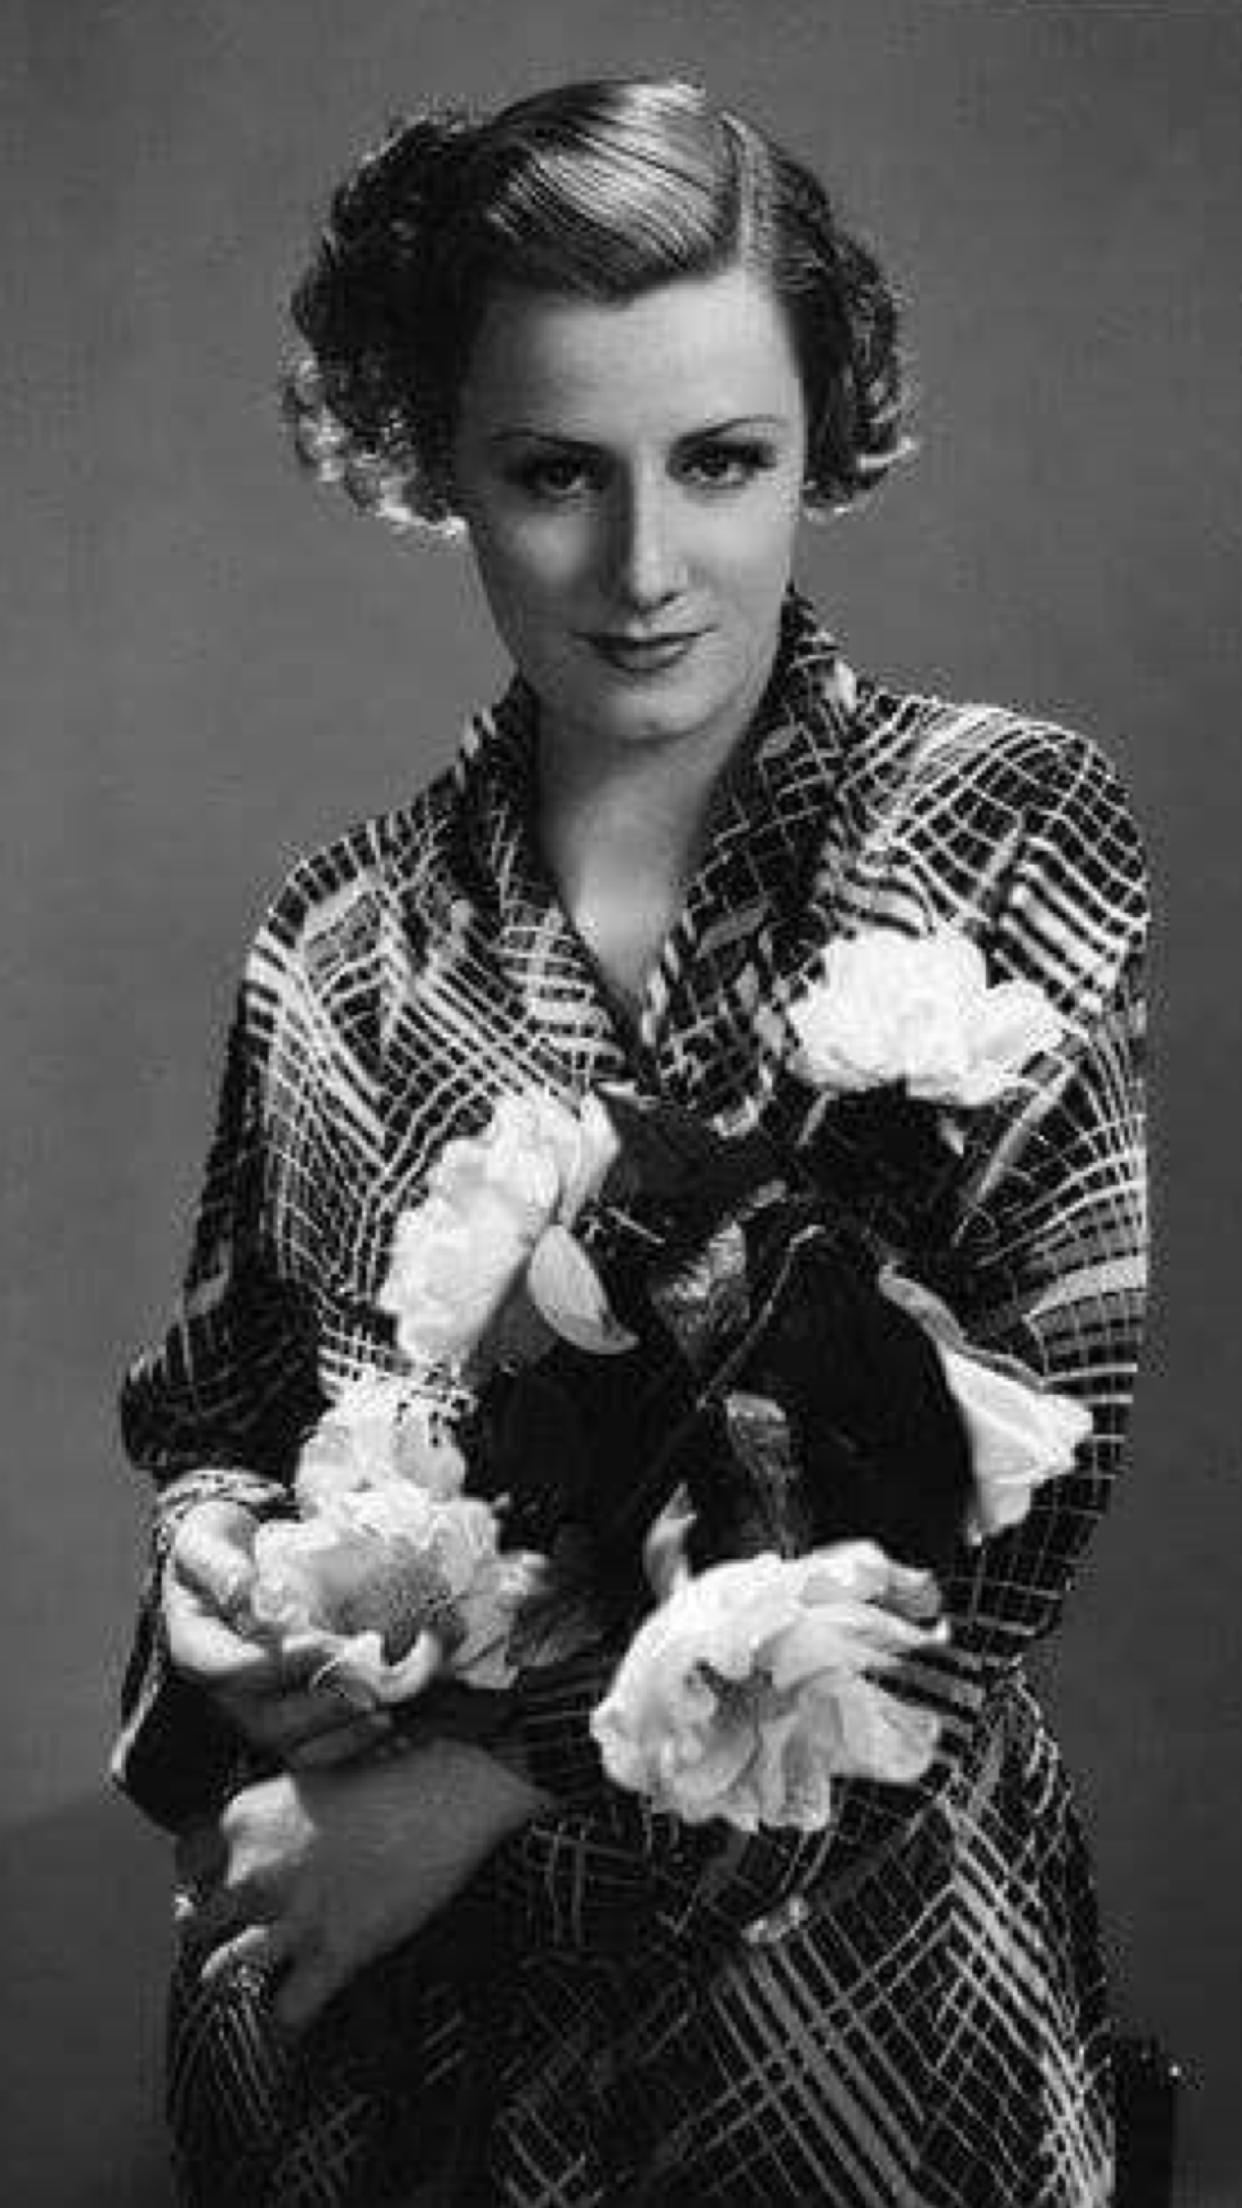 Pin on Irene Dunne Candid